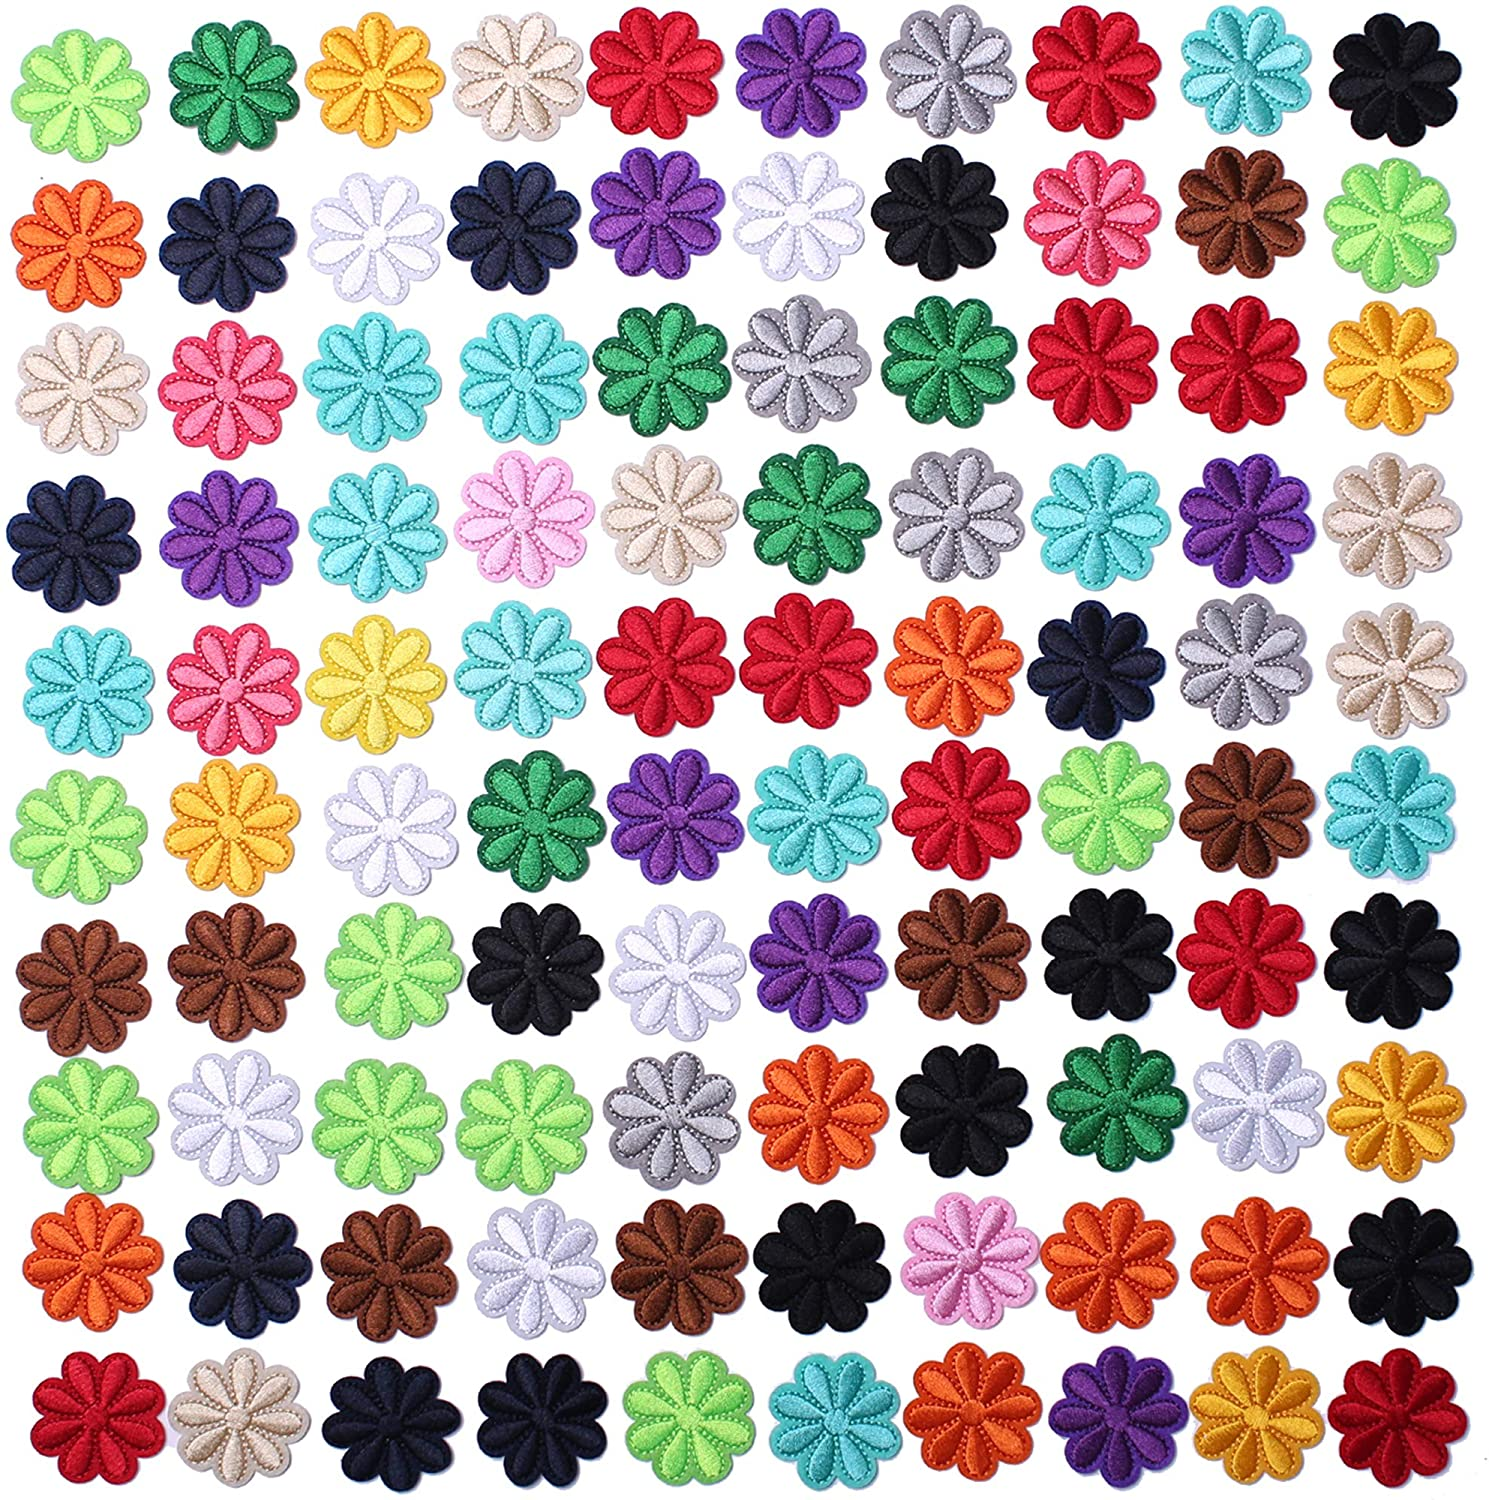 SHELCUPCool Embroidered Iron Patches, for Jackets, Packs, Jeans, Assorted Styles, 100pcs Flowers